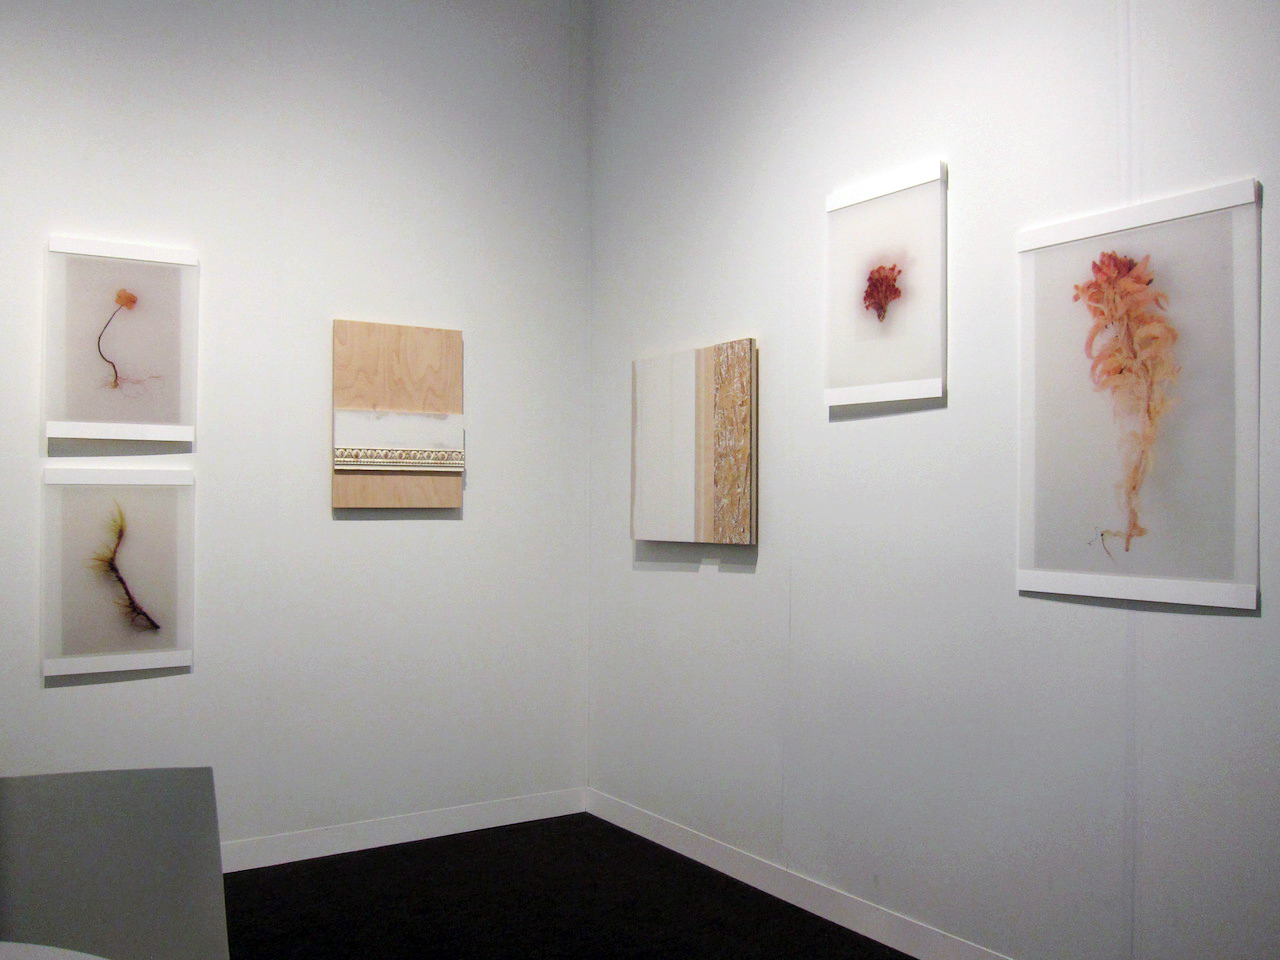 Works by Marion Wilson and Kirsten Nelson at Frederieke Taylor Gallery